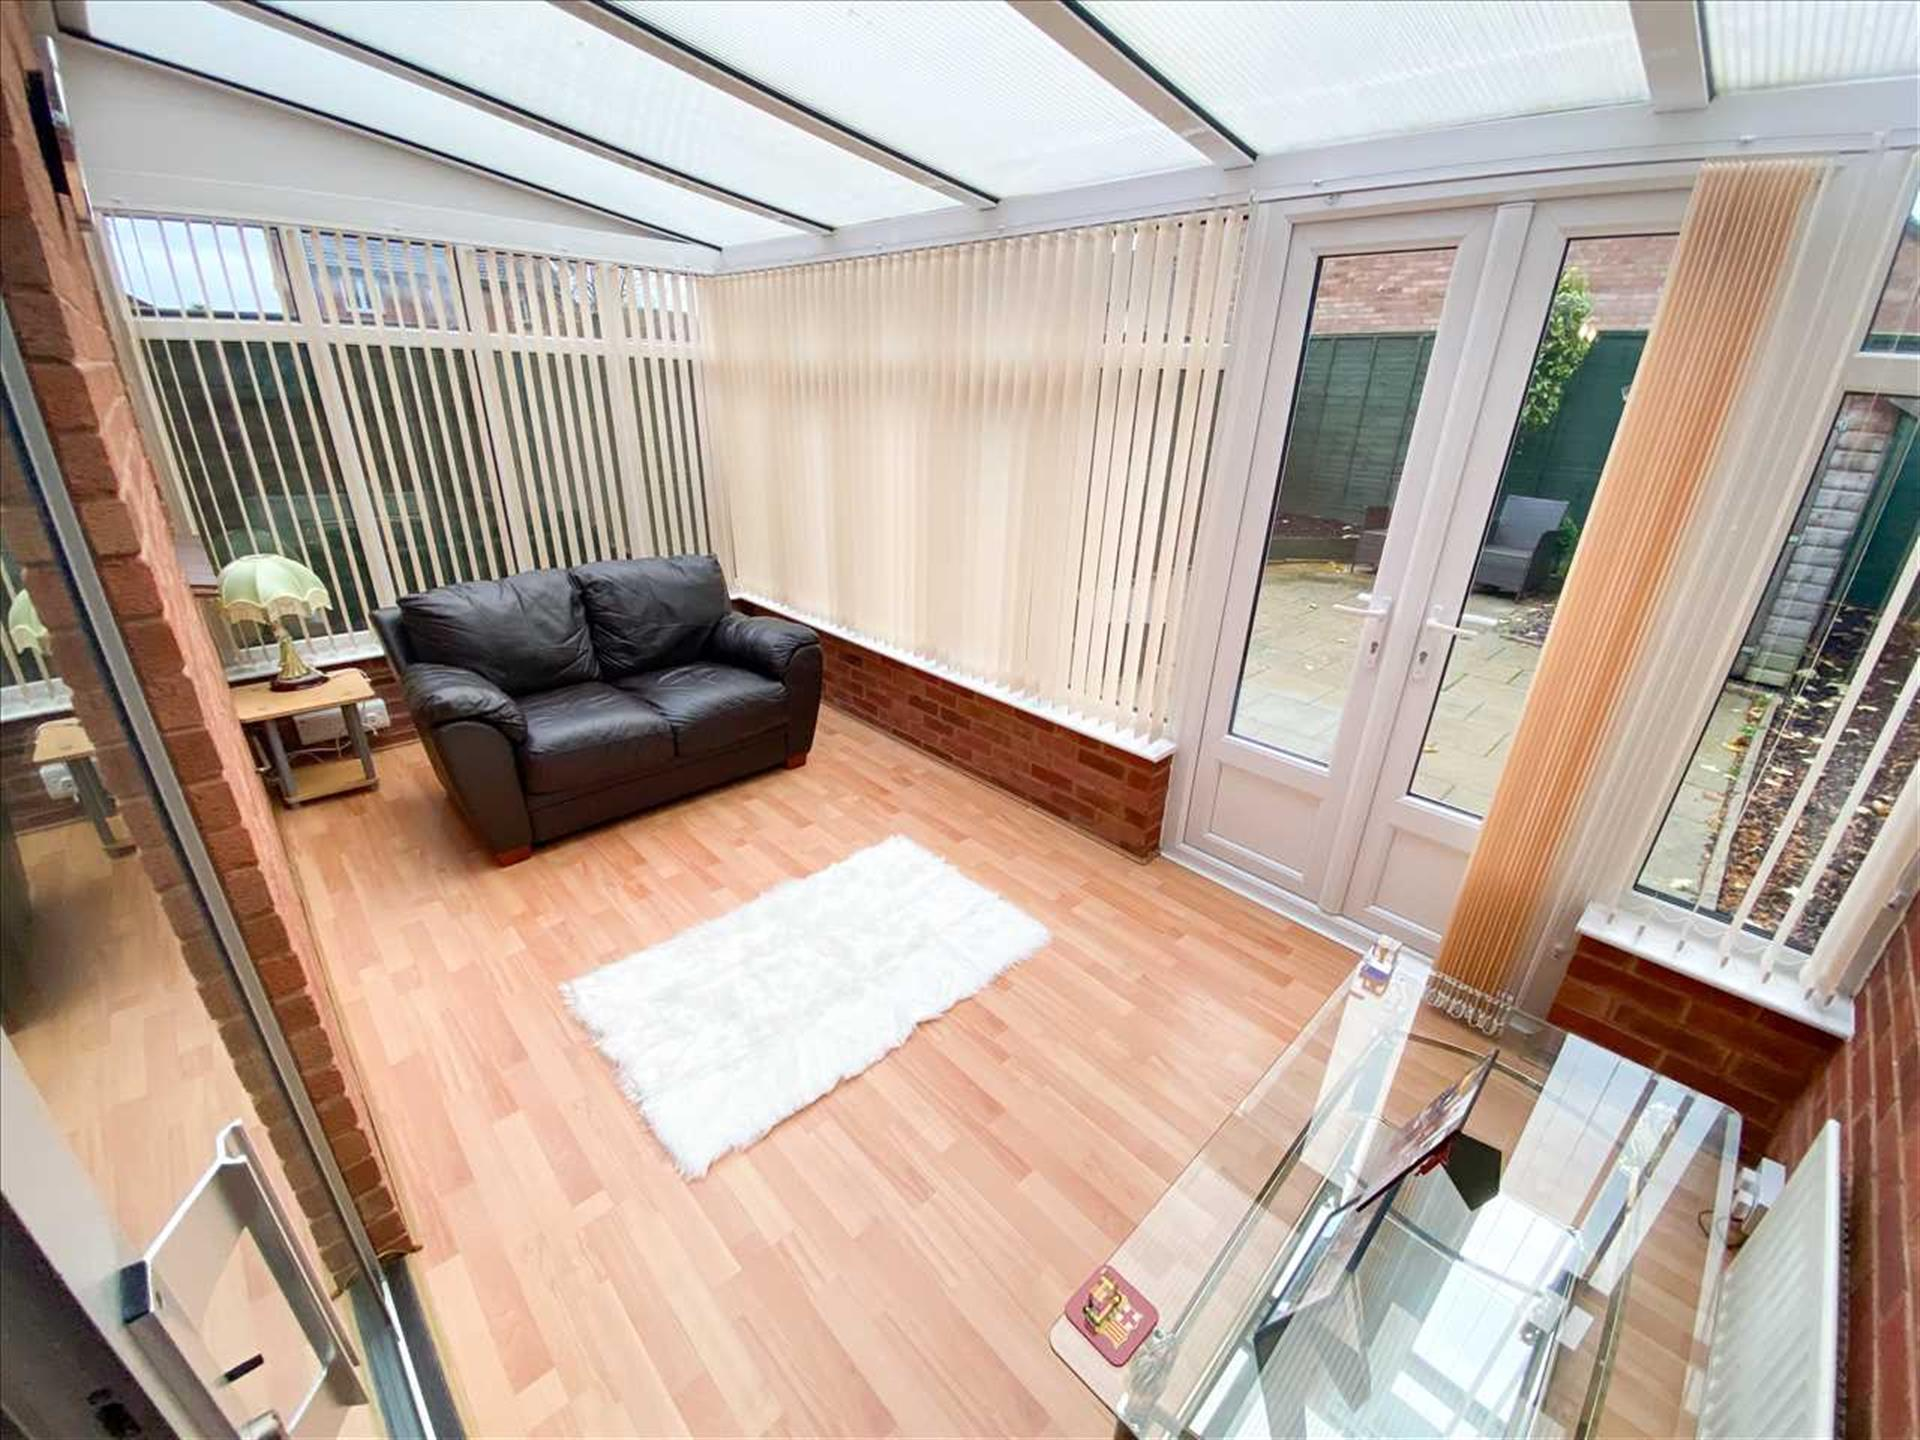 1 Bedroom Semi-detached House For Sale - Conservatory